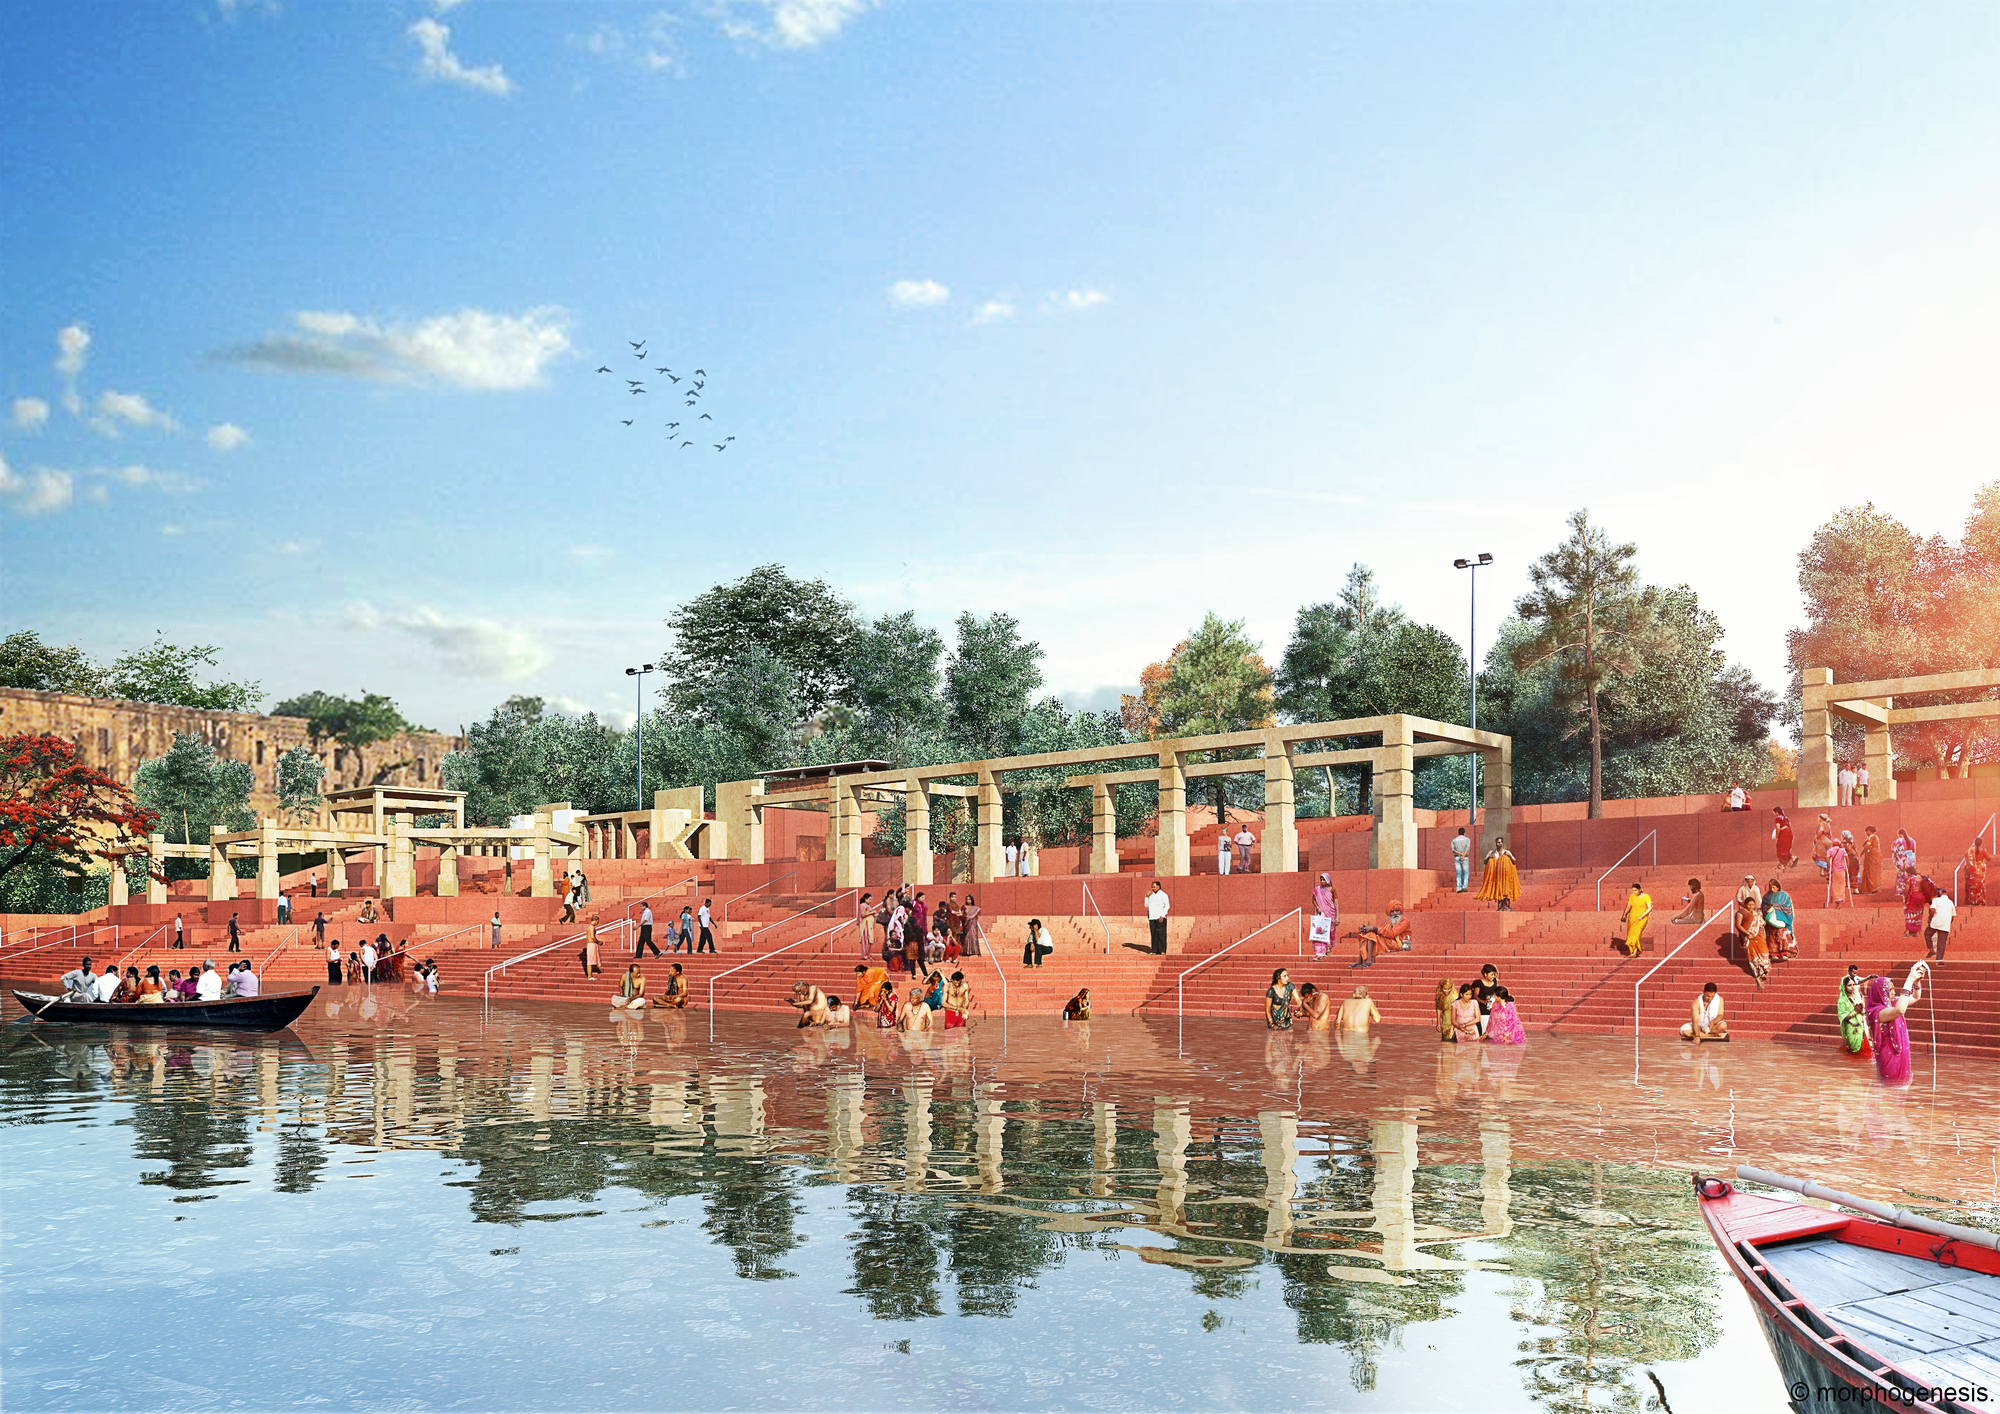 Massive River Development Plan Hopes to Rejuvenate India's Relationship to the Ganges